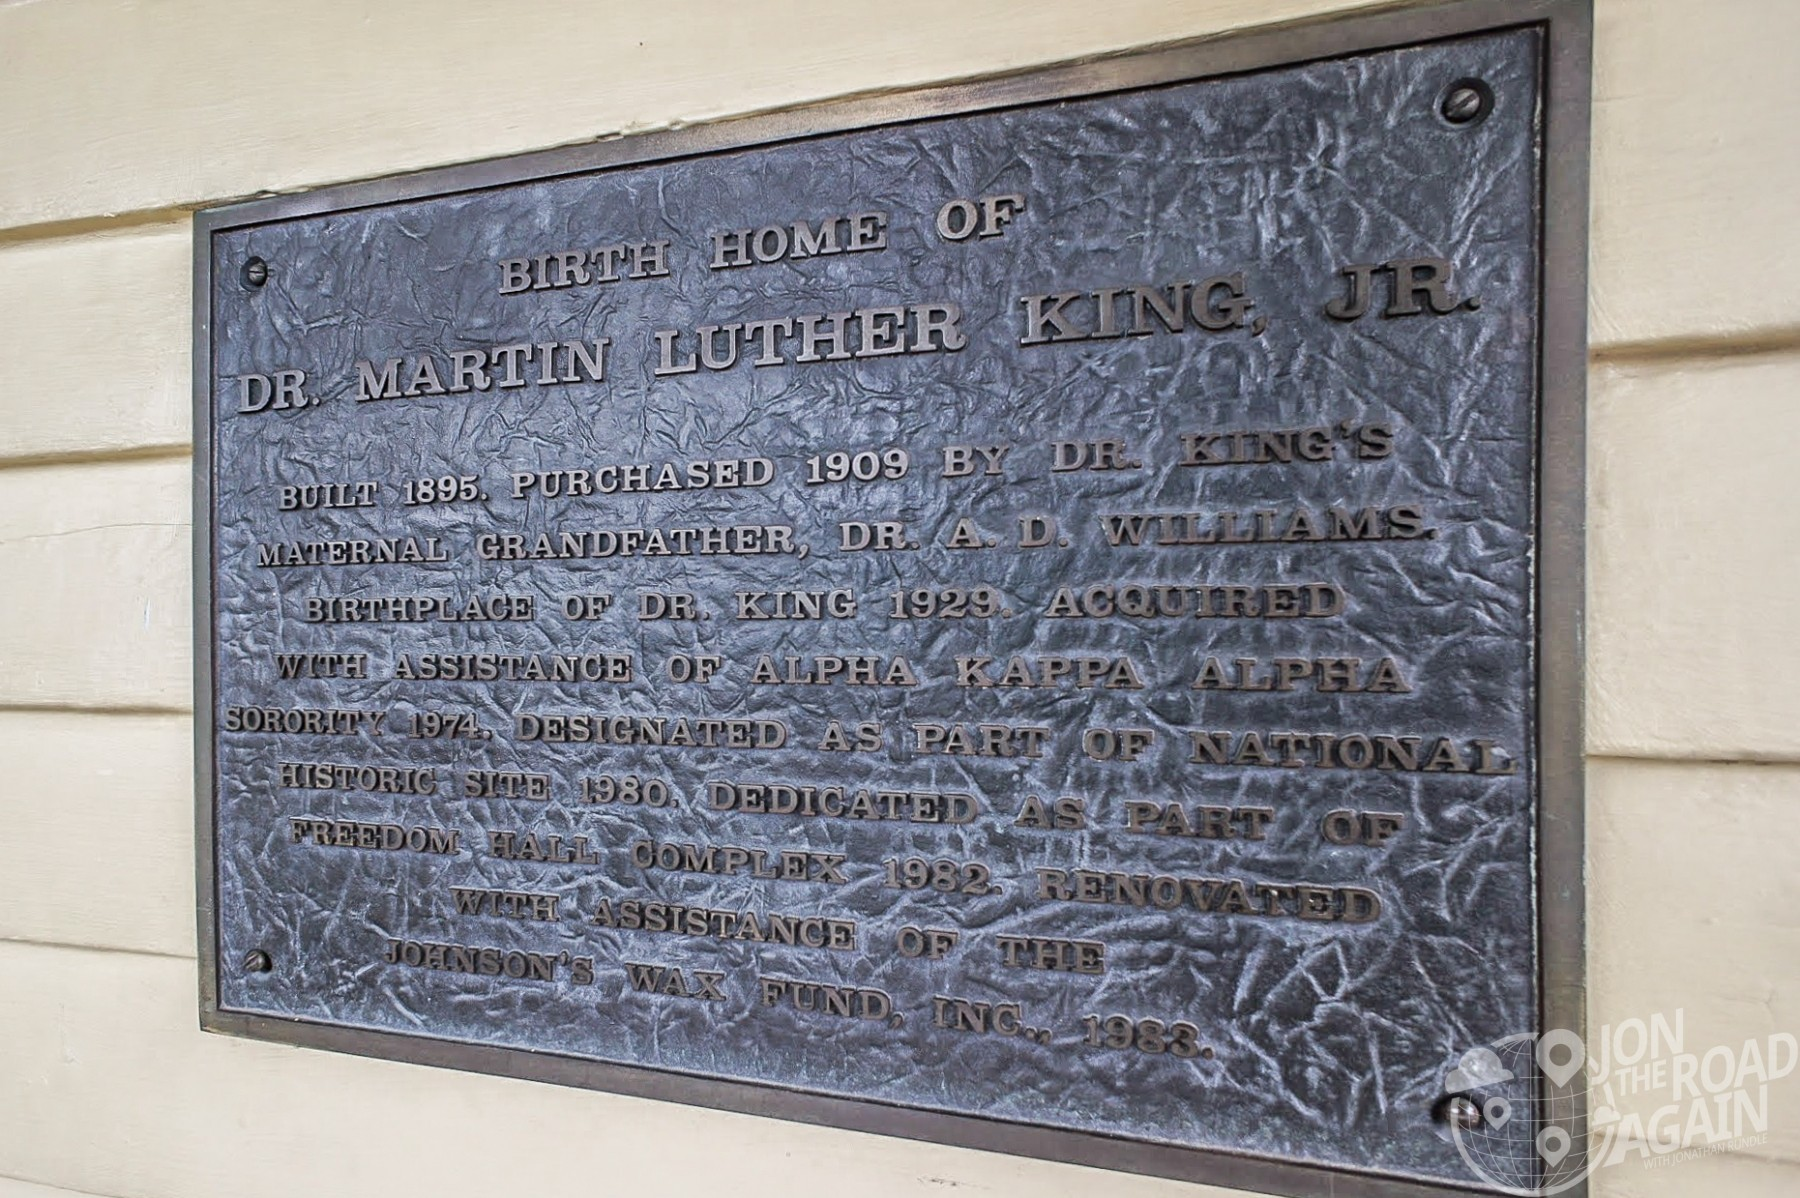 Martin Luther King home plaque